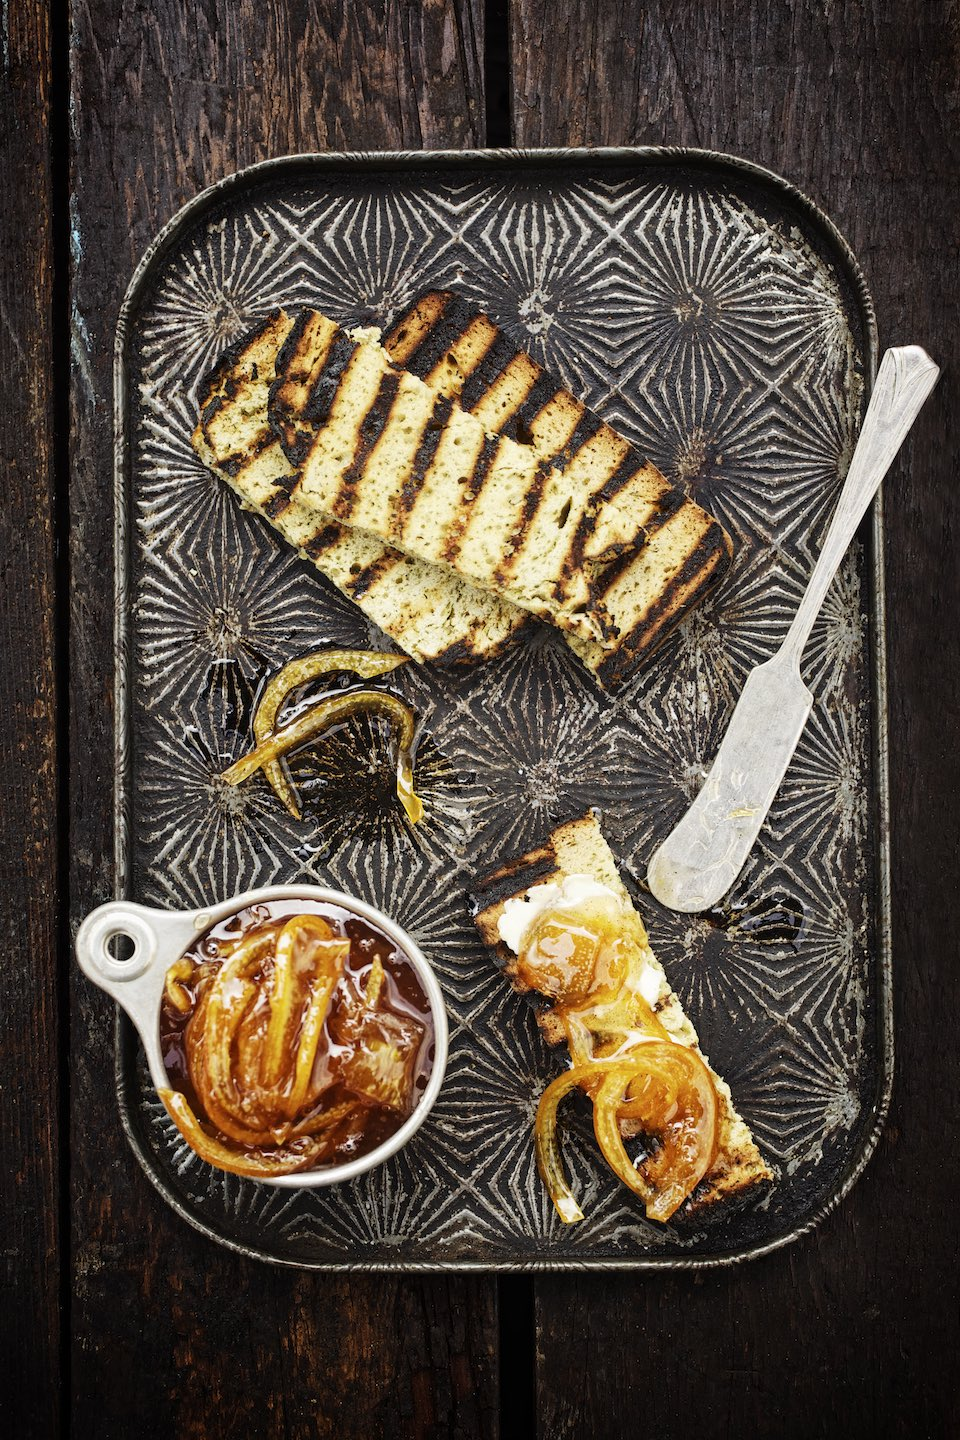 Jody Horton Photography - Grilled bread and candied orange preserves.